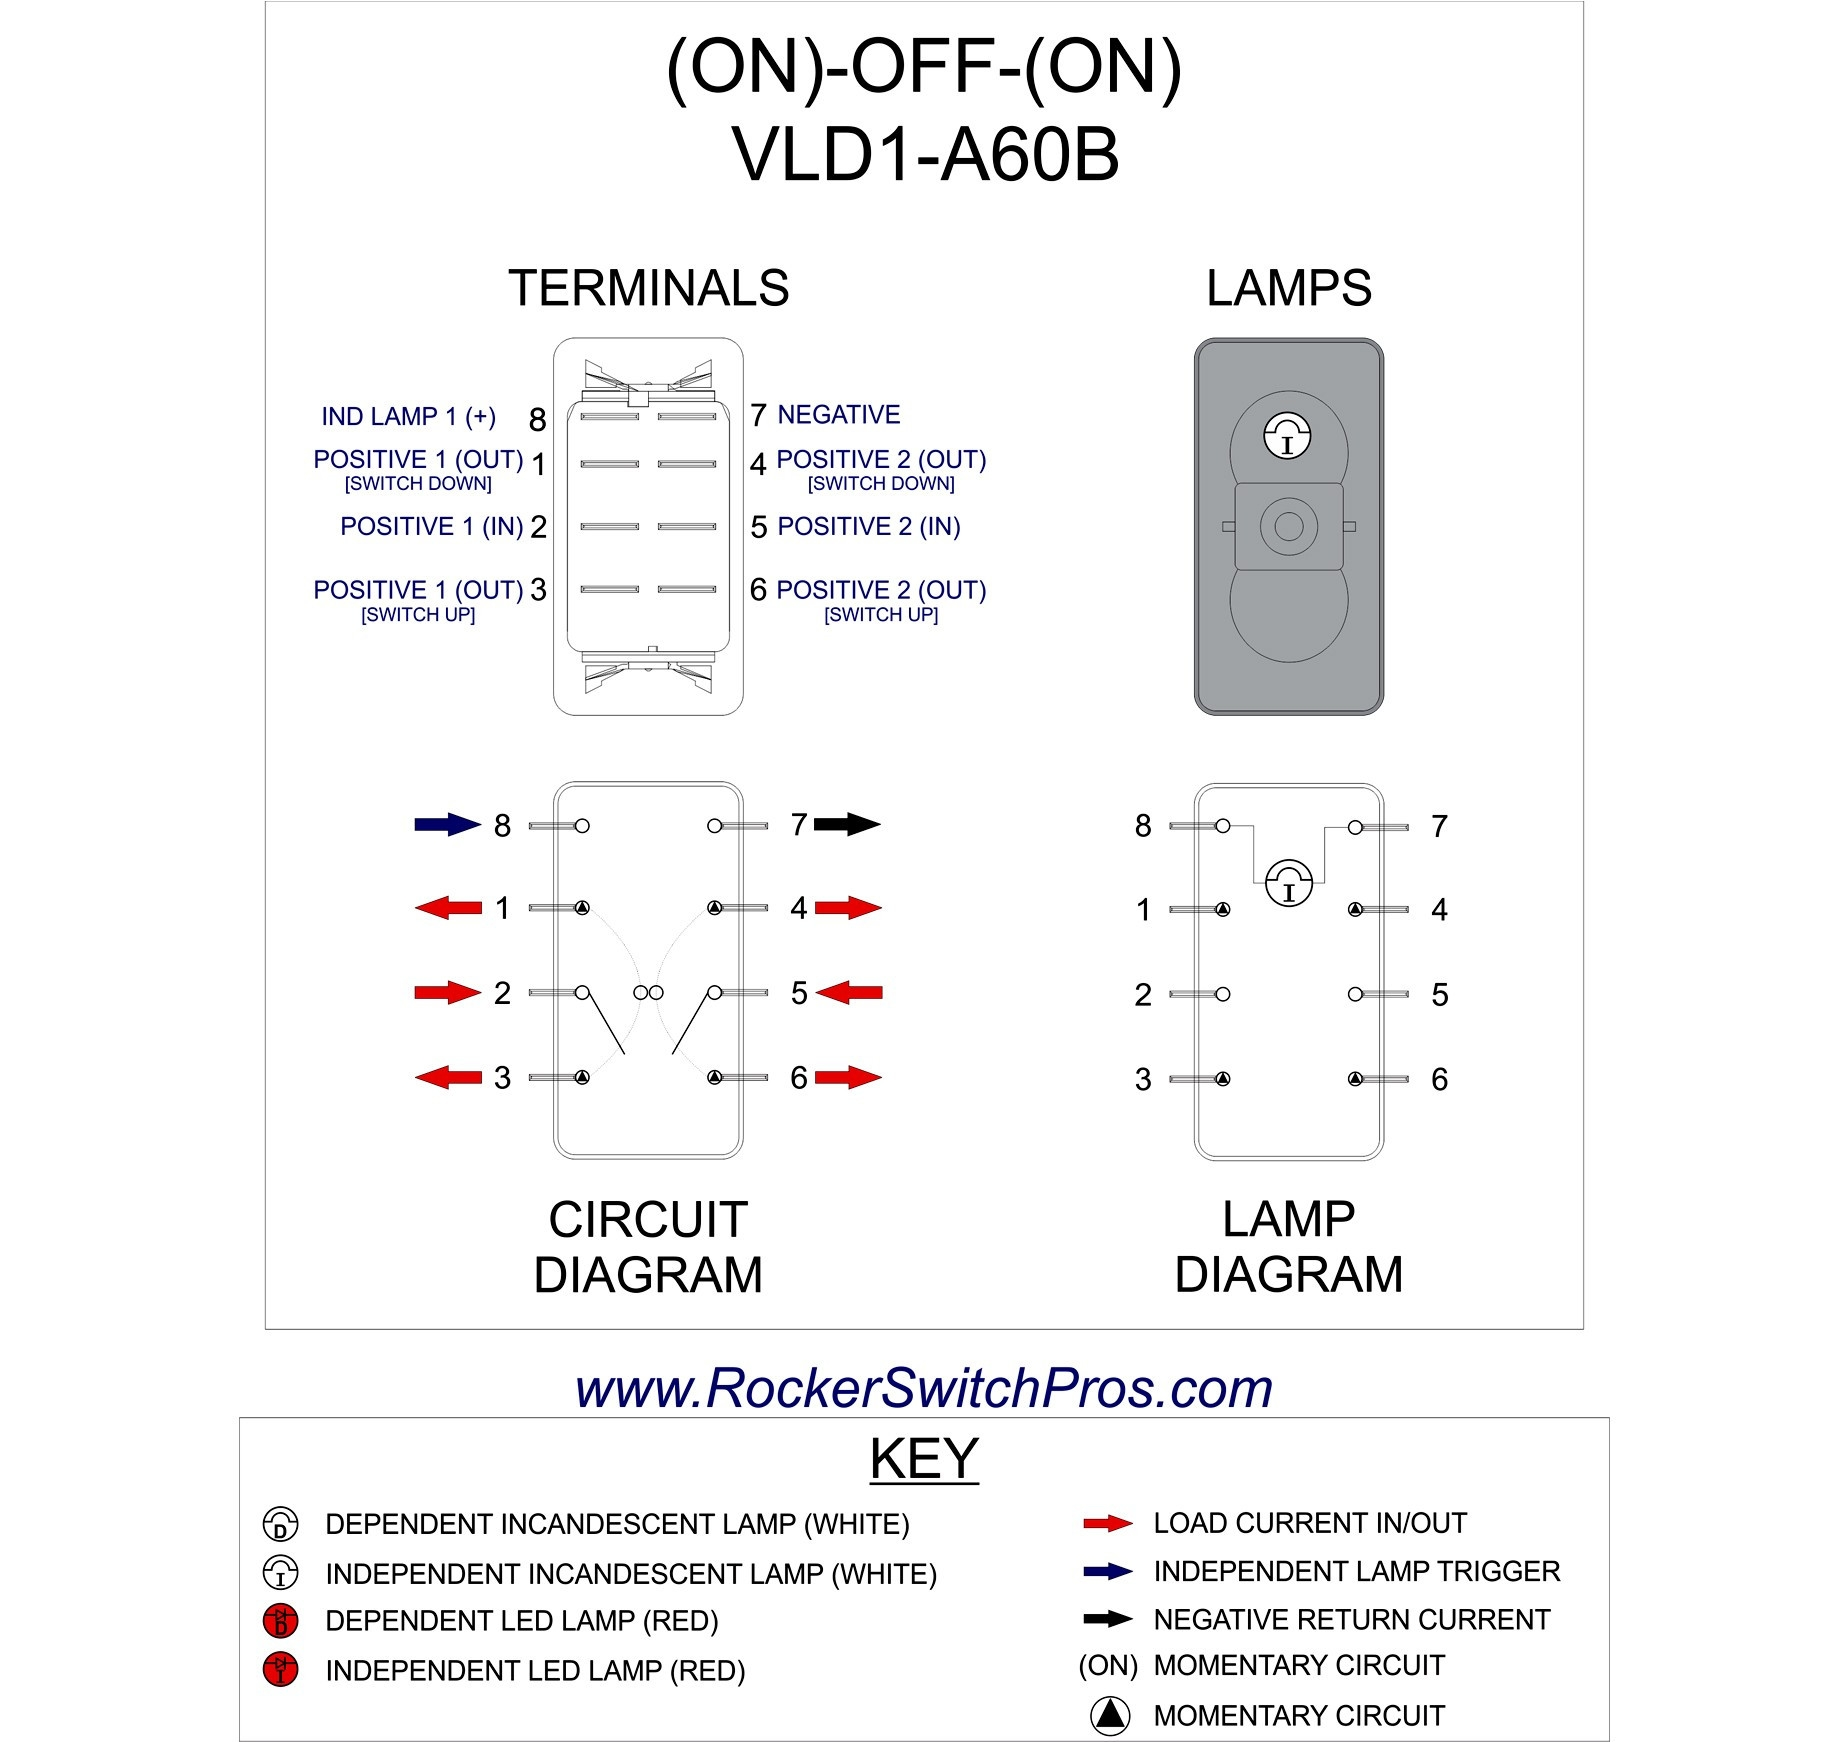 spdt toggle switch wiring diagram Download-Dpdt Switch Wiring Diagram Guitar Save Dpdt Switch Wiring Diagram Unique Wiring Diagram Image 5-p